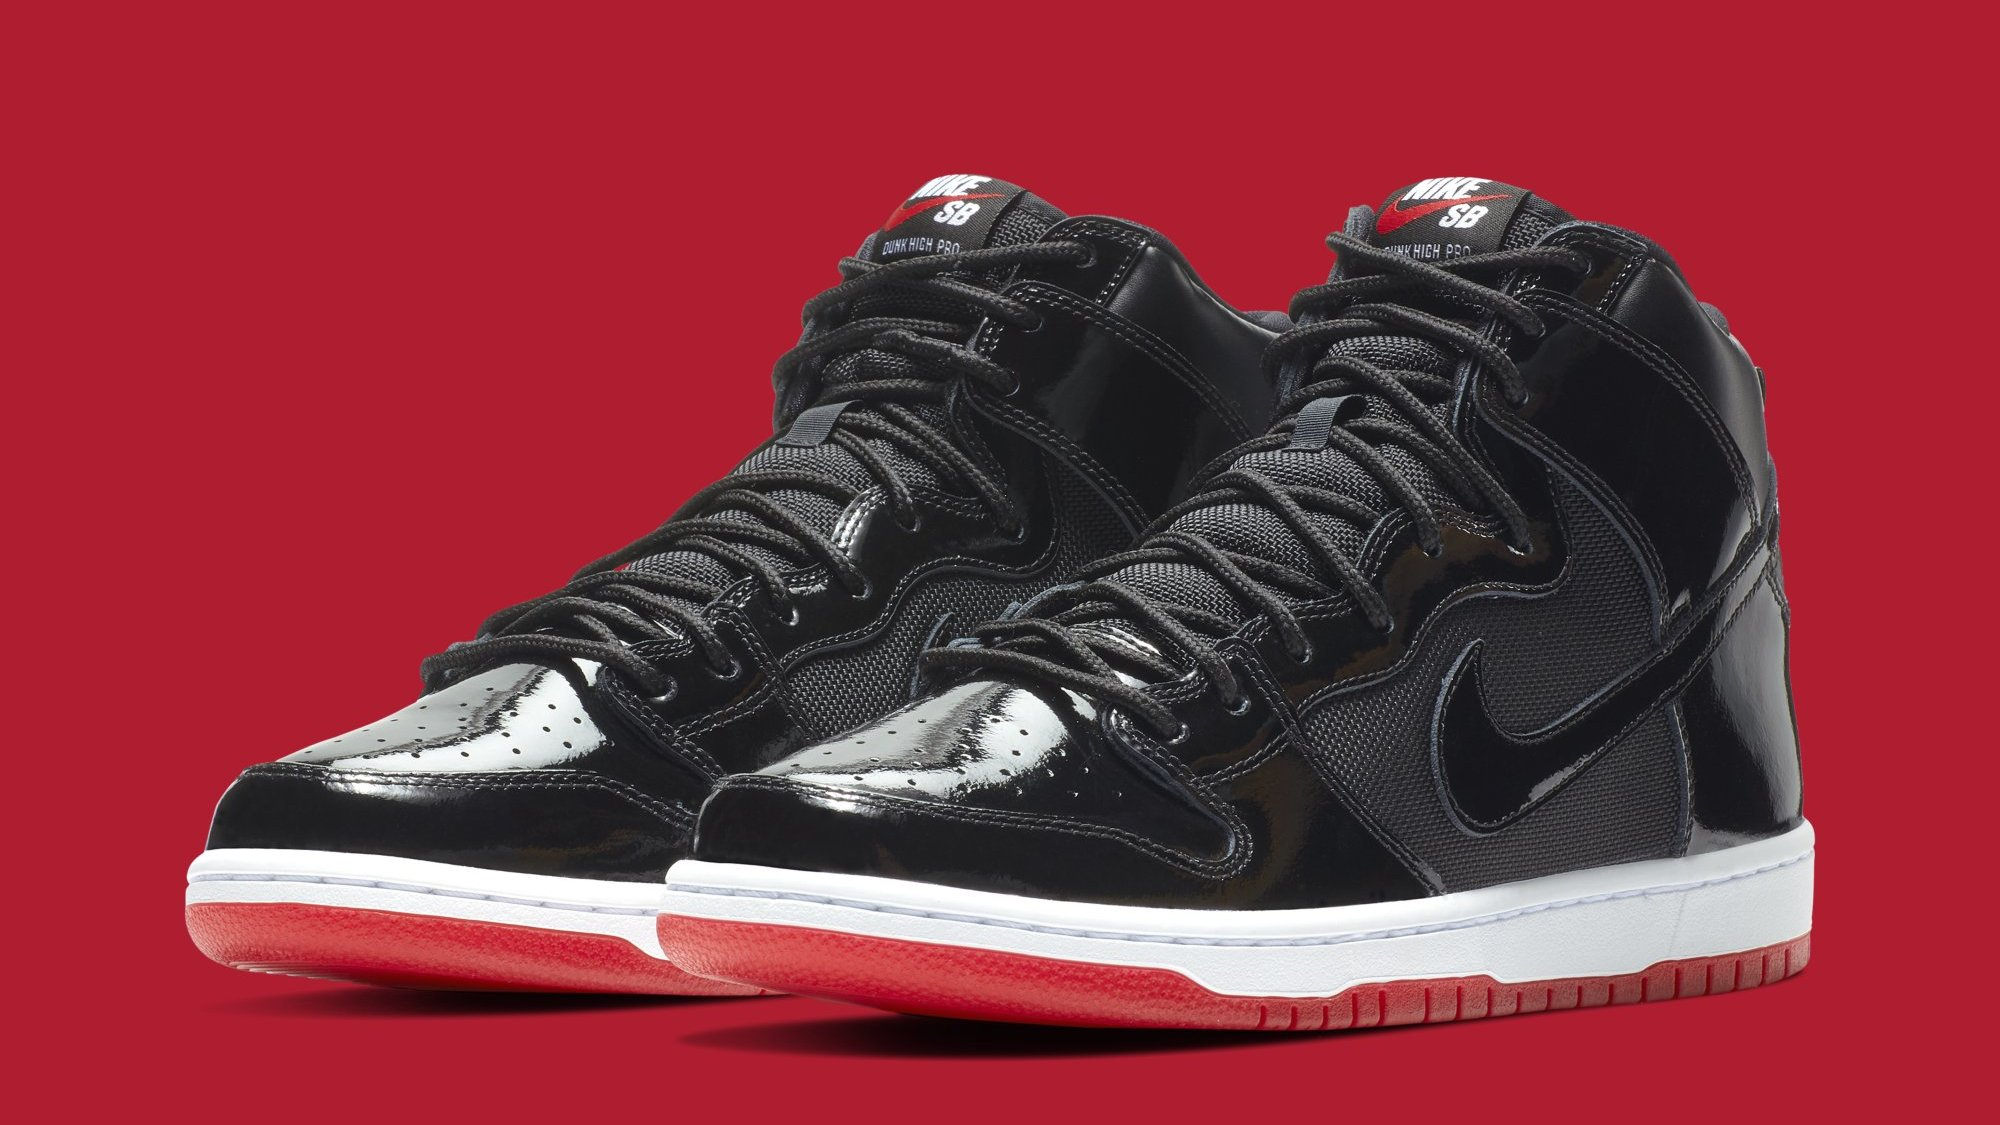 aa2b1e057e69 Nike SB Dunk High 'Bred' AJ7730-001 Release Date | Sole Collector